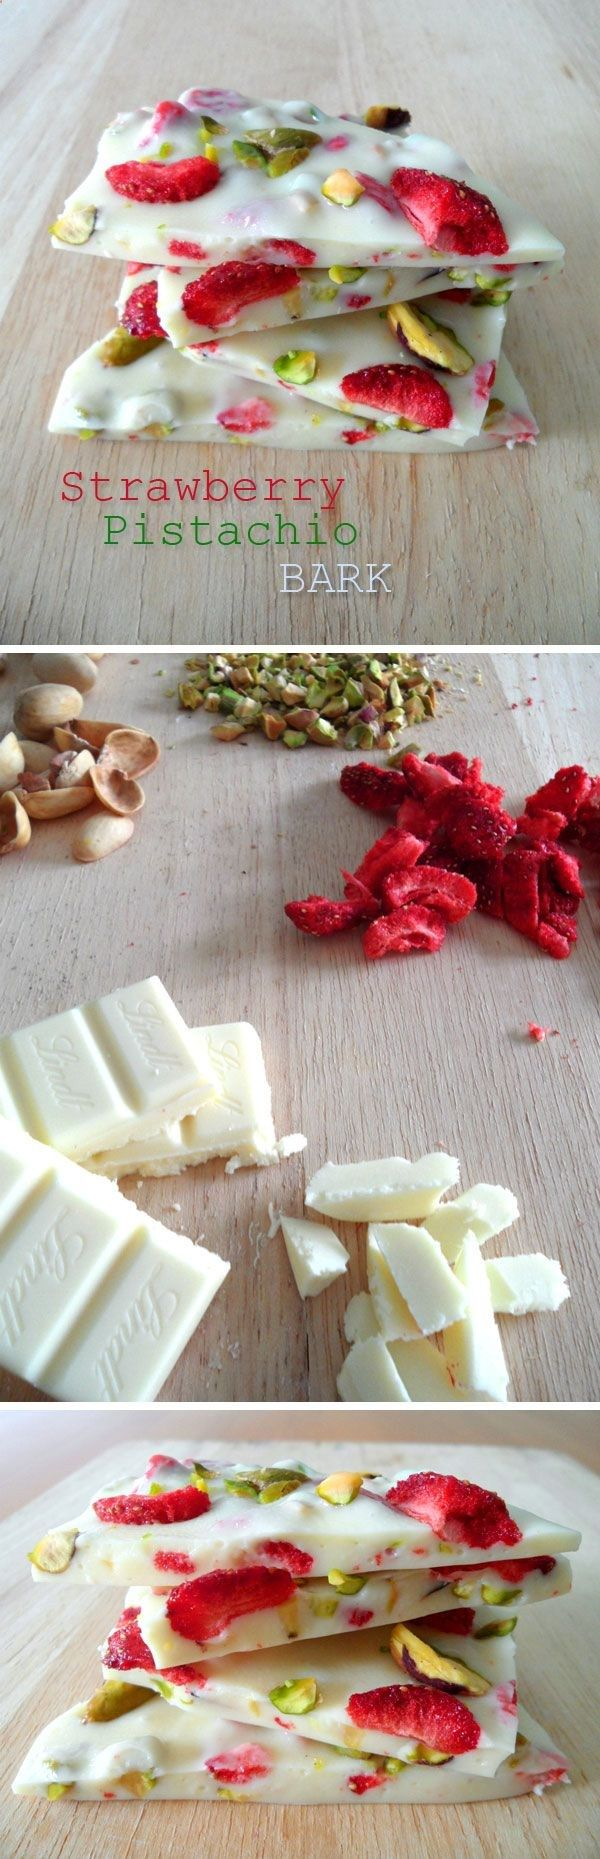 Strawberry Pistachio Bark - bright and colorful summer chocolate (also perfect for the holidays)